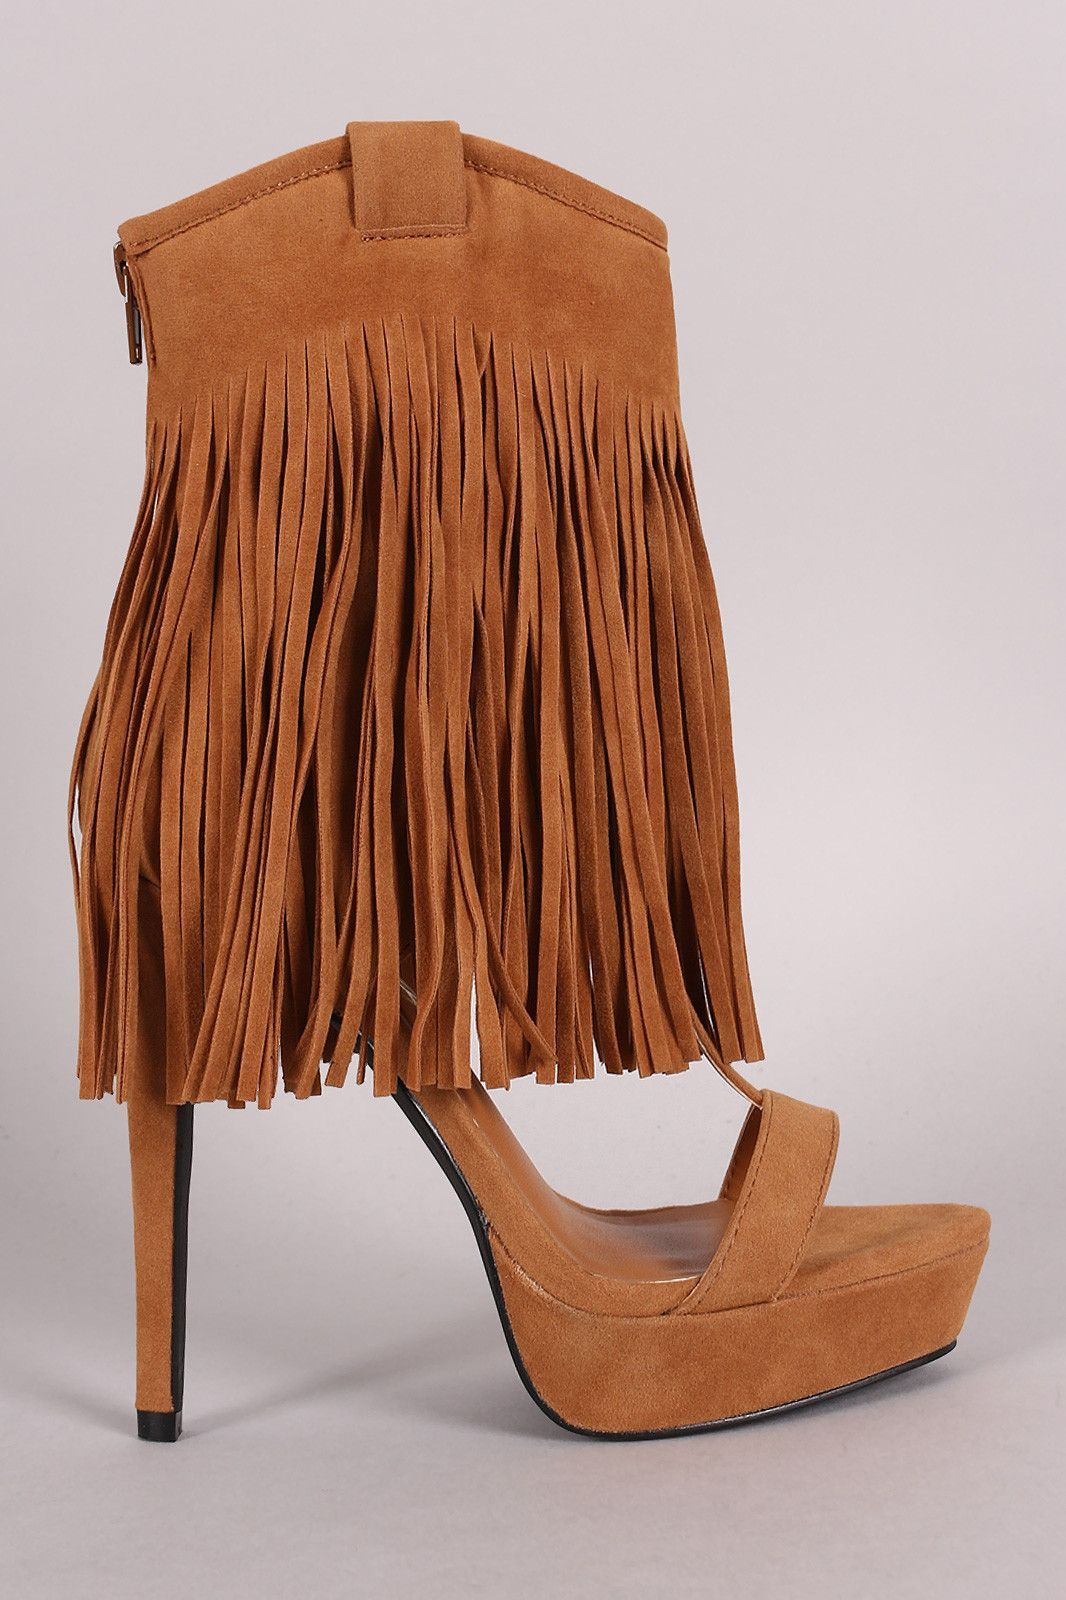 Privileged Suede Long Fringe Cuff Stiletto Platform Heel  #fashionclub #fashionblogger #womensfashion #fashionable #style #fashiongram #trendy #fashion